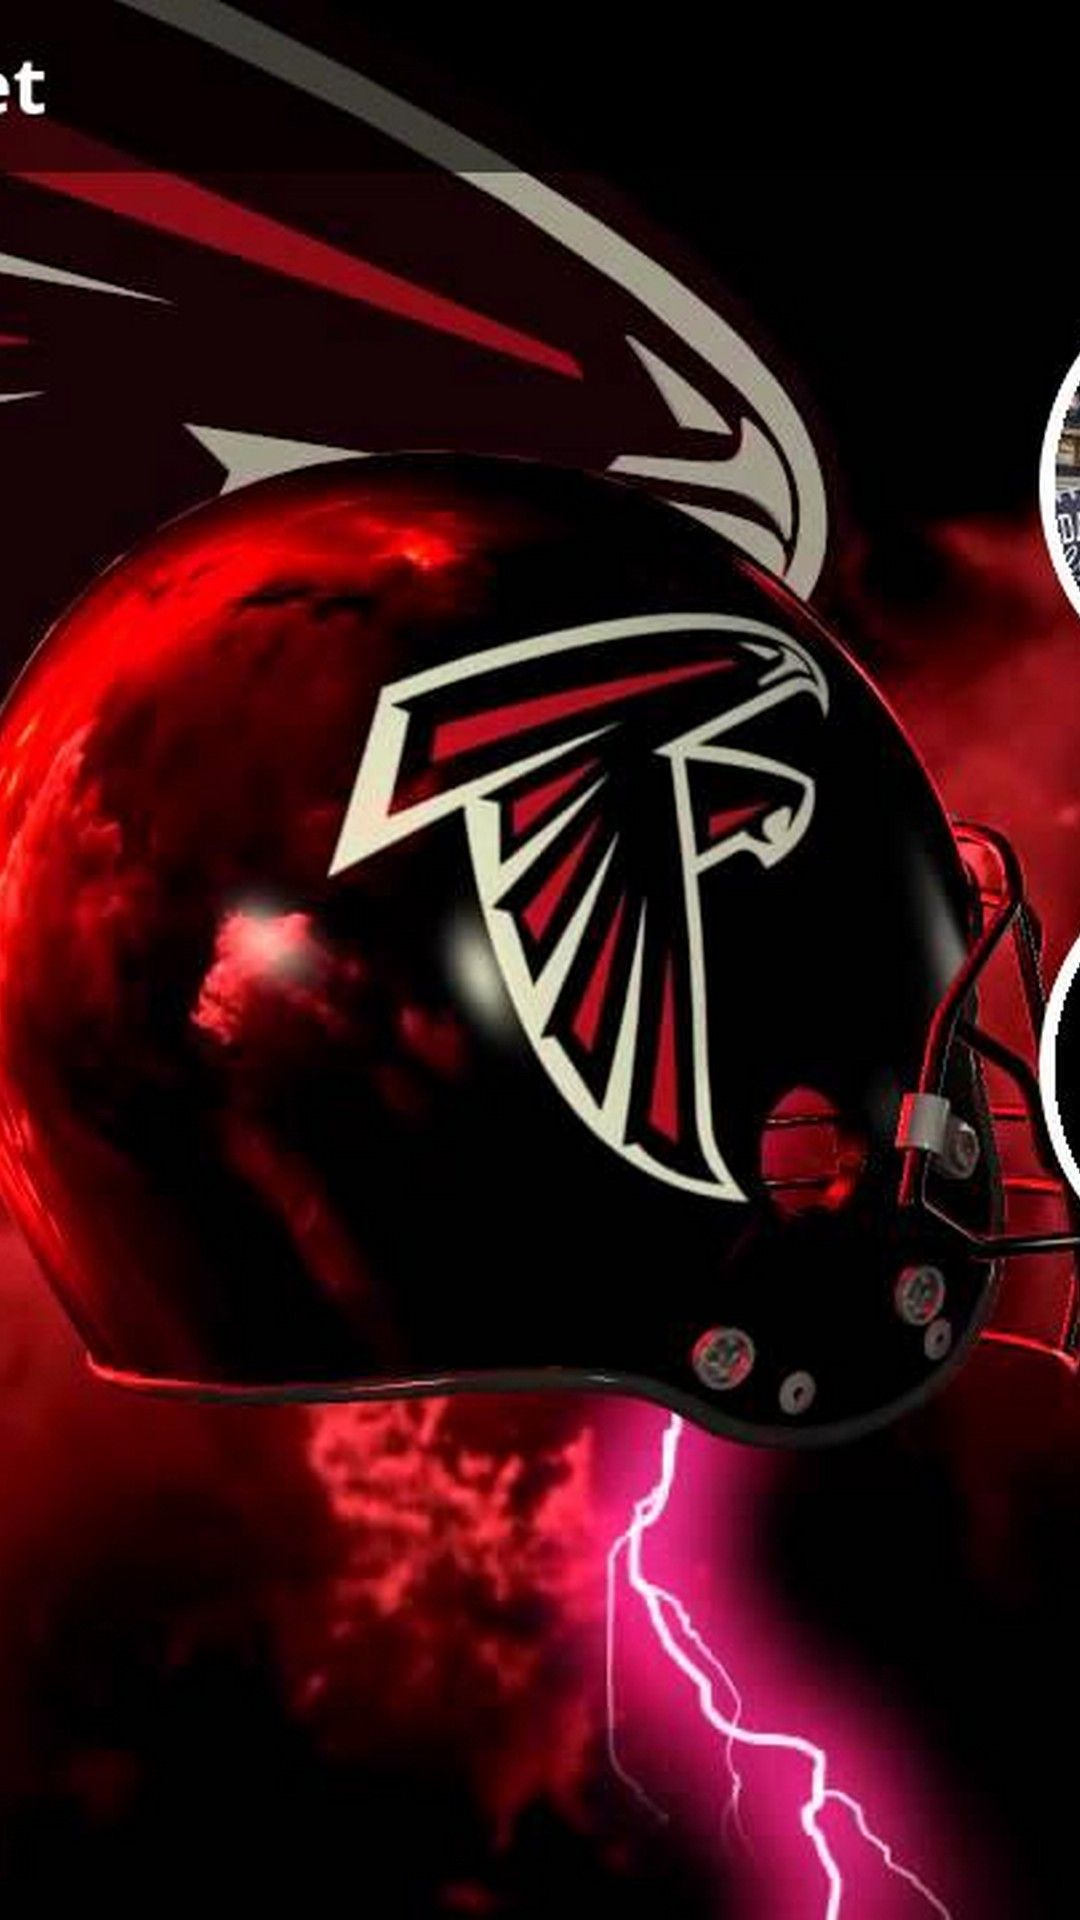 Atlanta Falcons Iphone 8 Plus Wallpaper Best Nfl Wallpaper Atlanta Falcons Futbol Americano Nfl Halcon